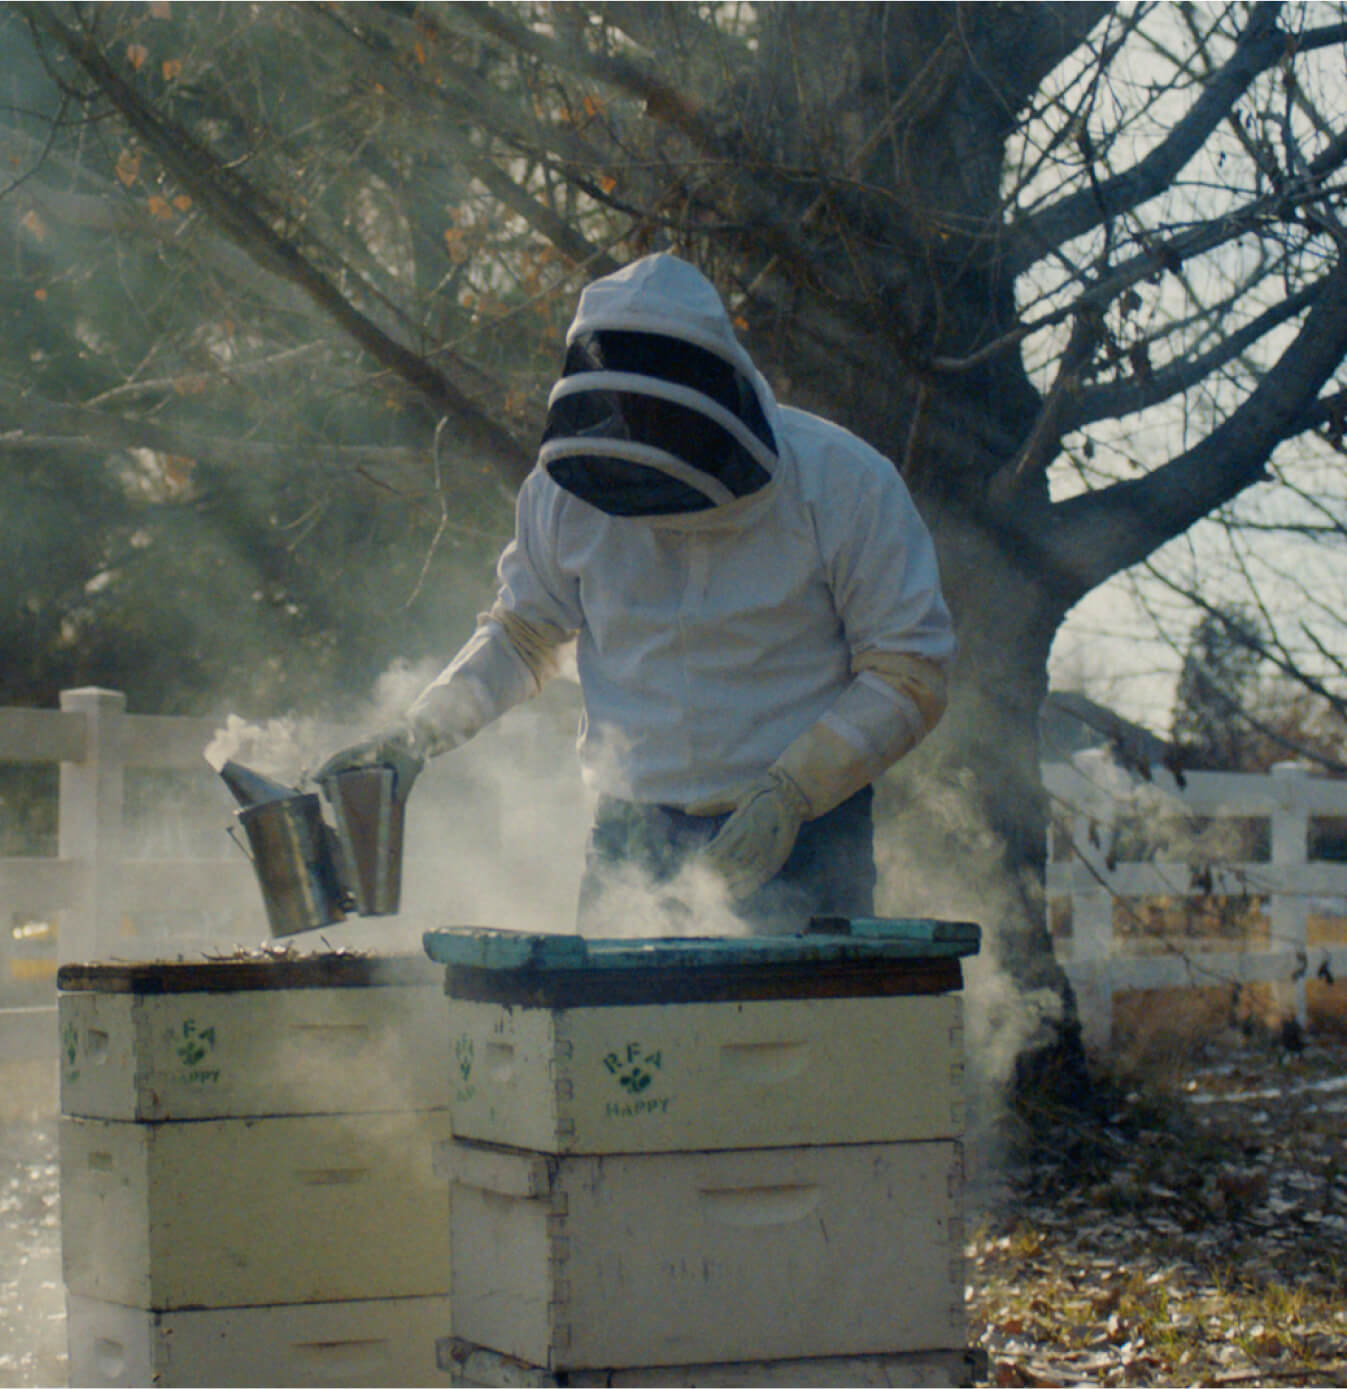 A beekeeper gently smoking out the hives.